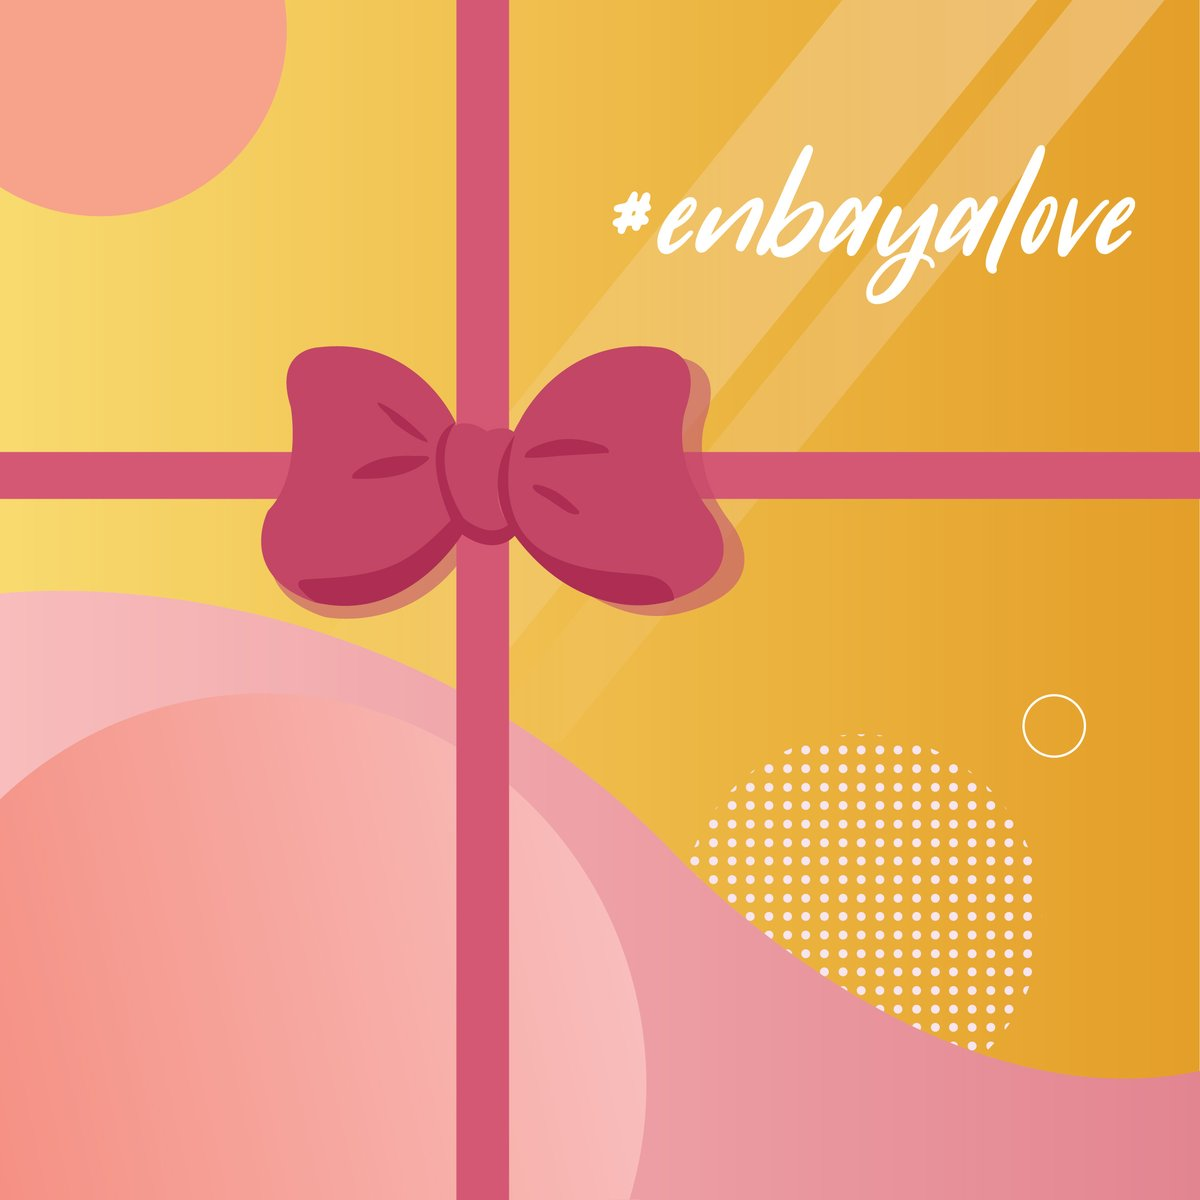 👉LOVE MONTH ENDING  February is drawing to a close, and that means so do our Free Tokens. There really aren't many left, and you've got 3 days to grab them while you can.   A Token a Day keeps the Darkness away 💛  #enbayalove #enbayacares #freetokens #valentinesday #valentines